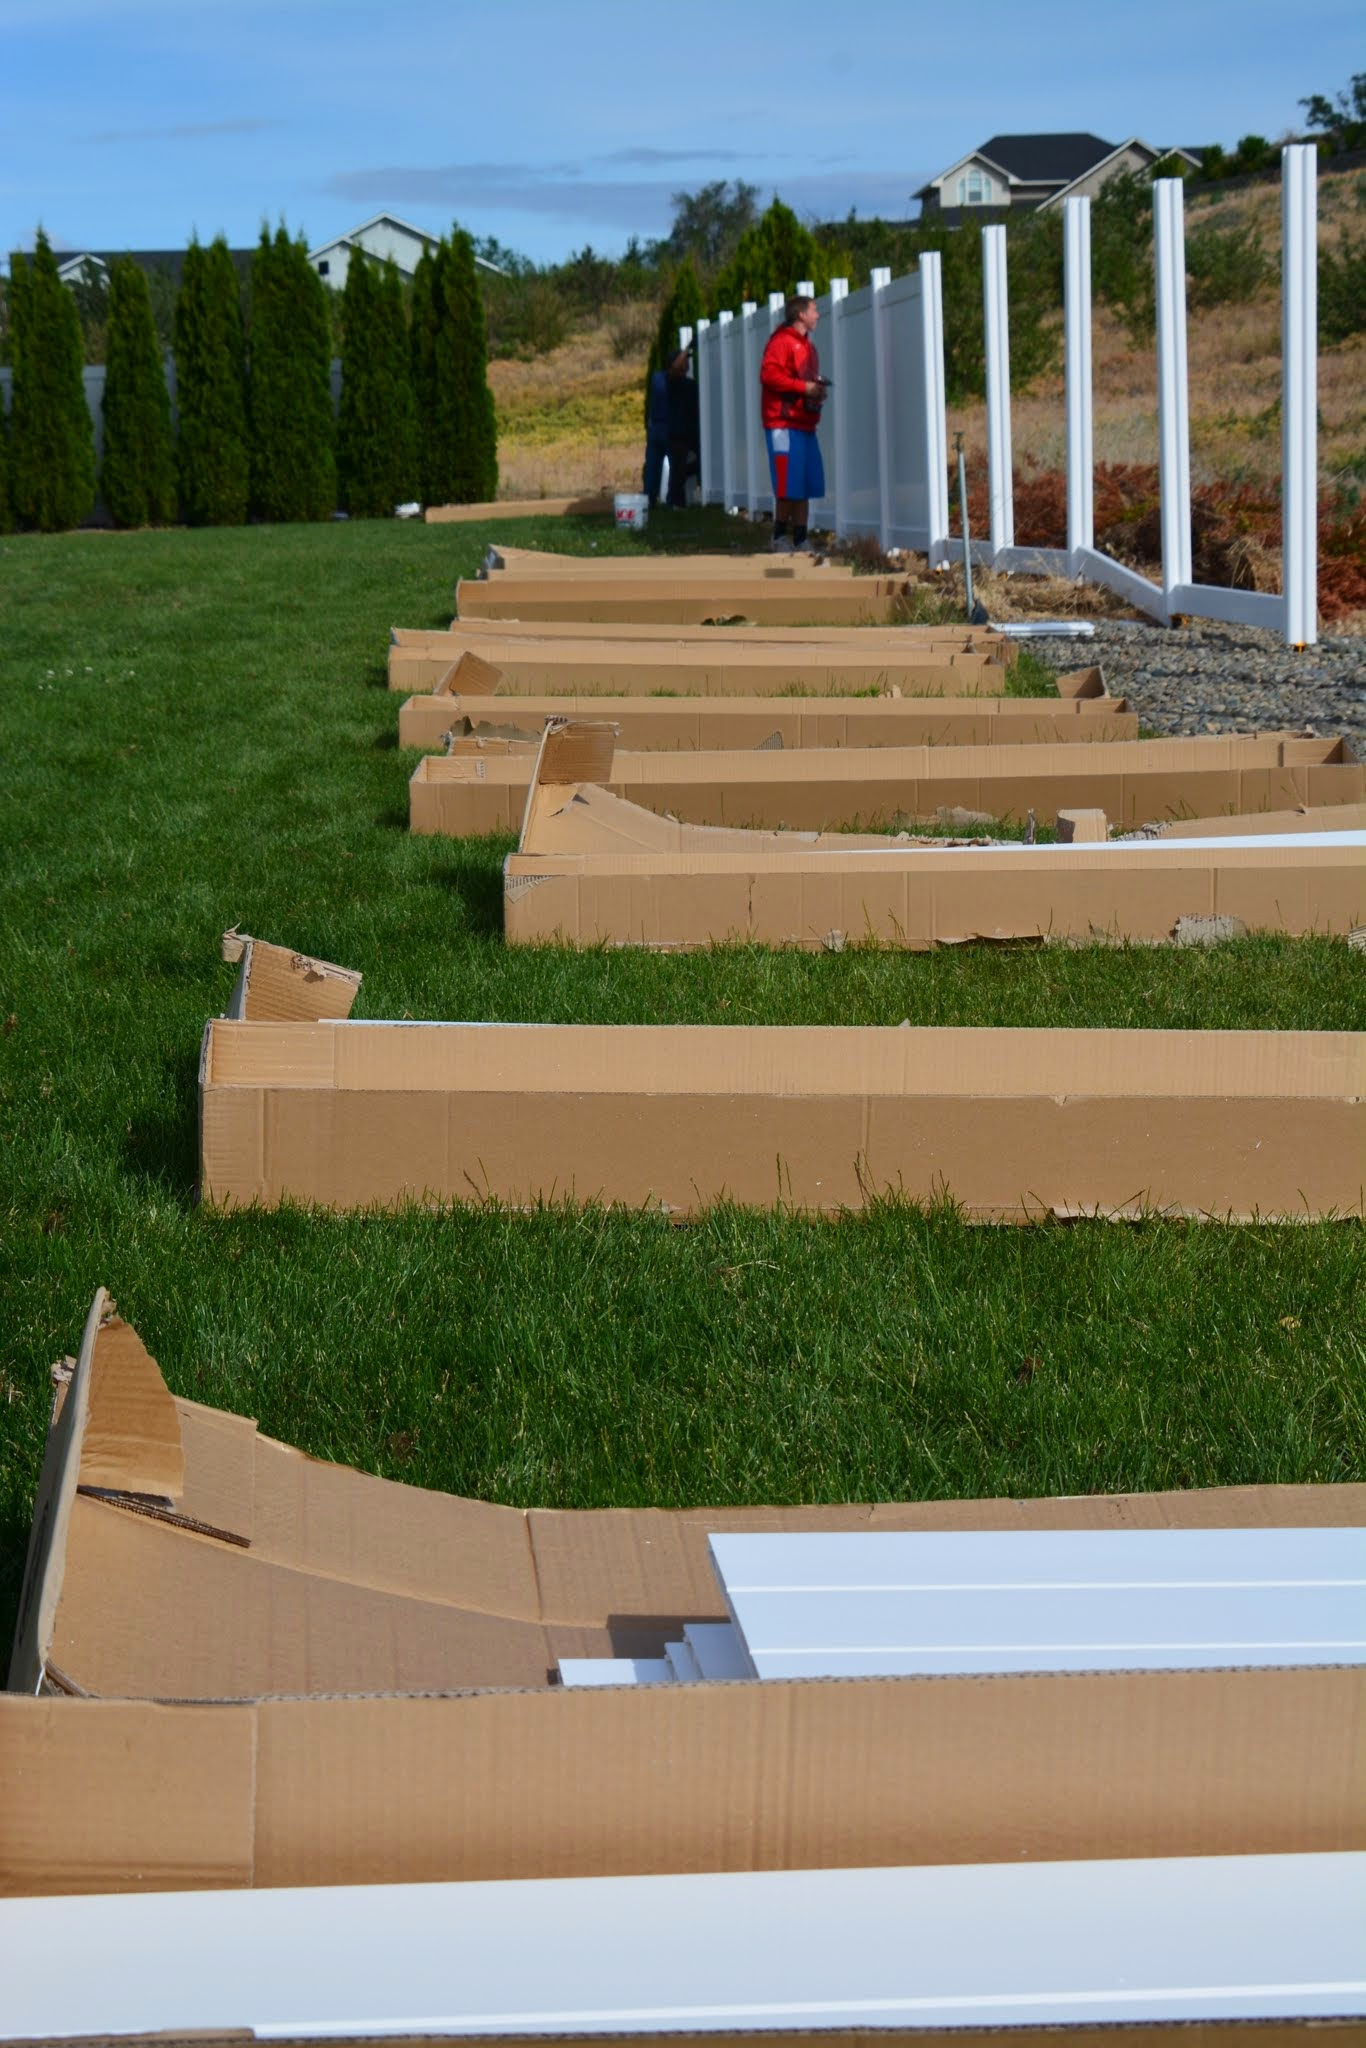 Assembling all the vinyl fence panels